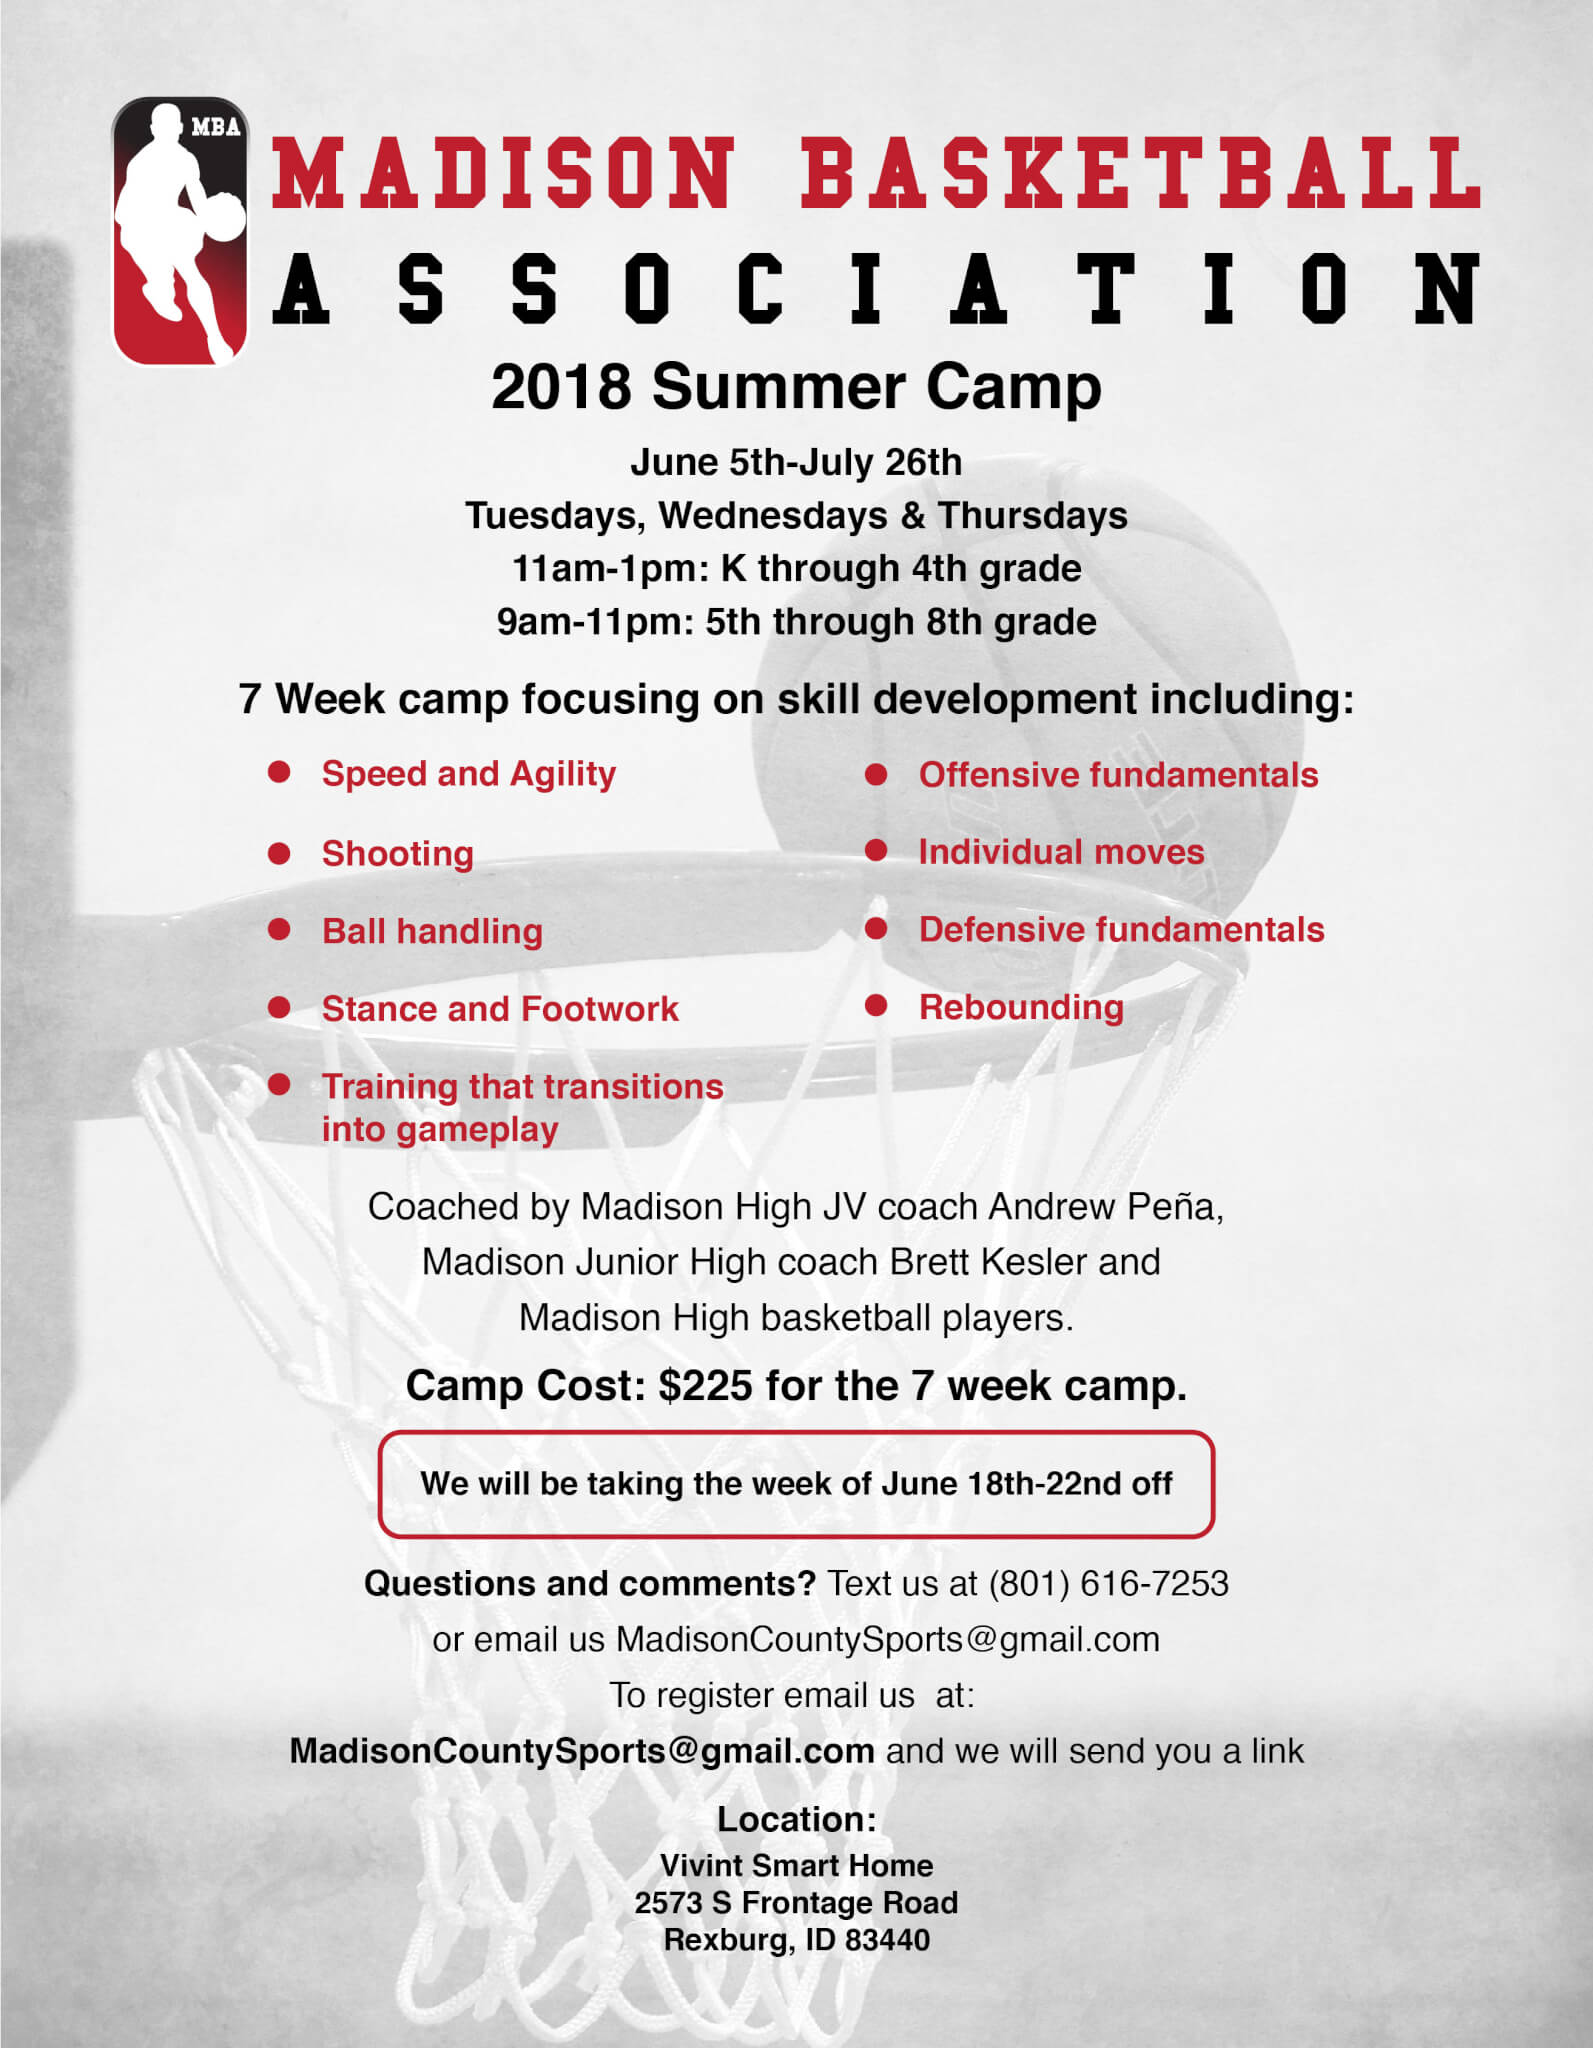 flyer for the Madison Basketball Associaiton